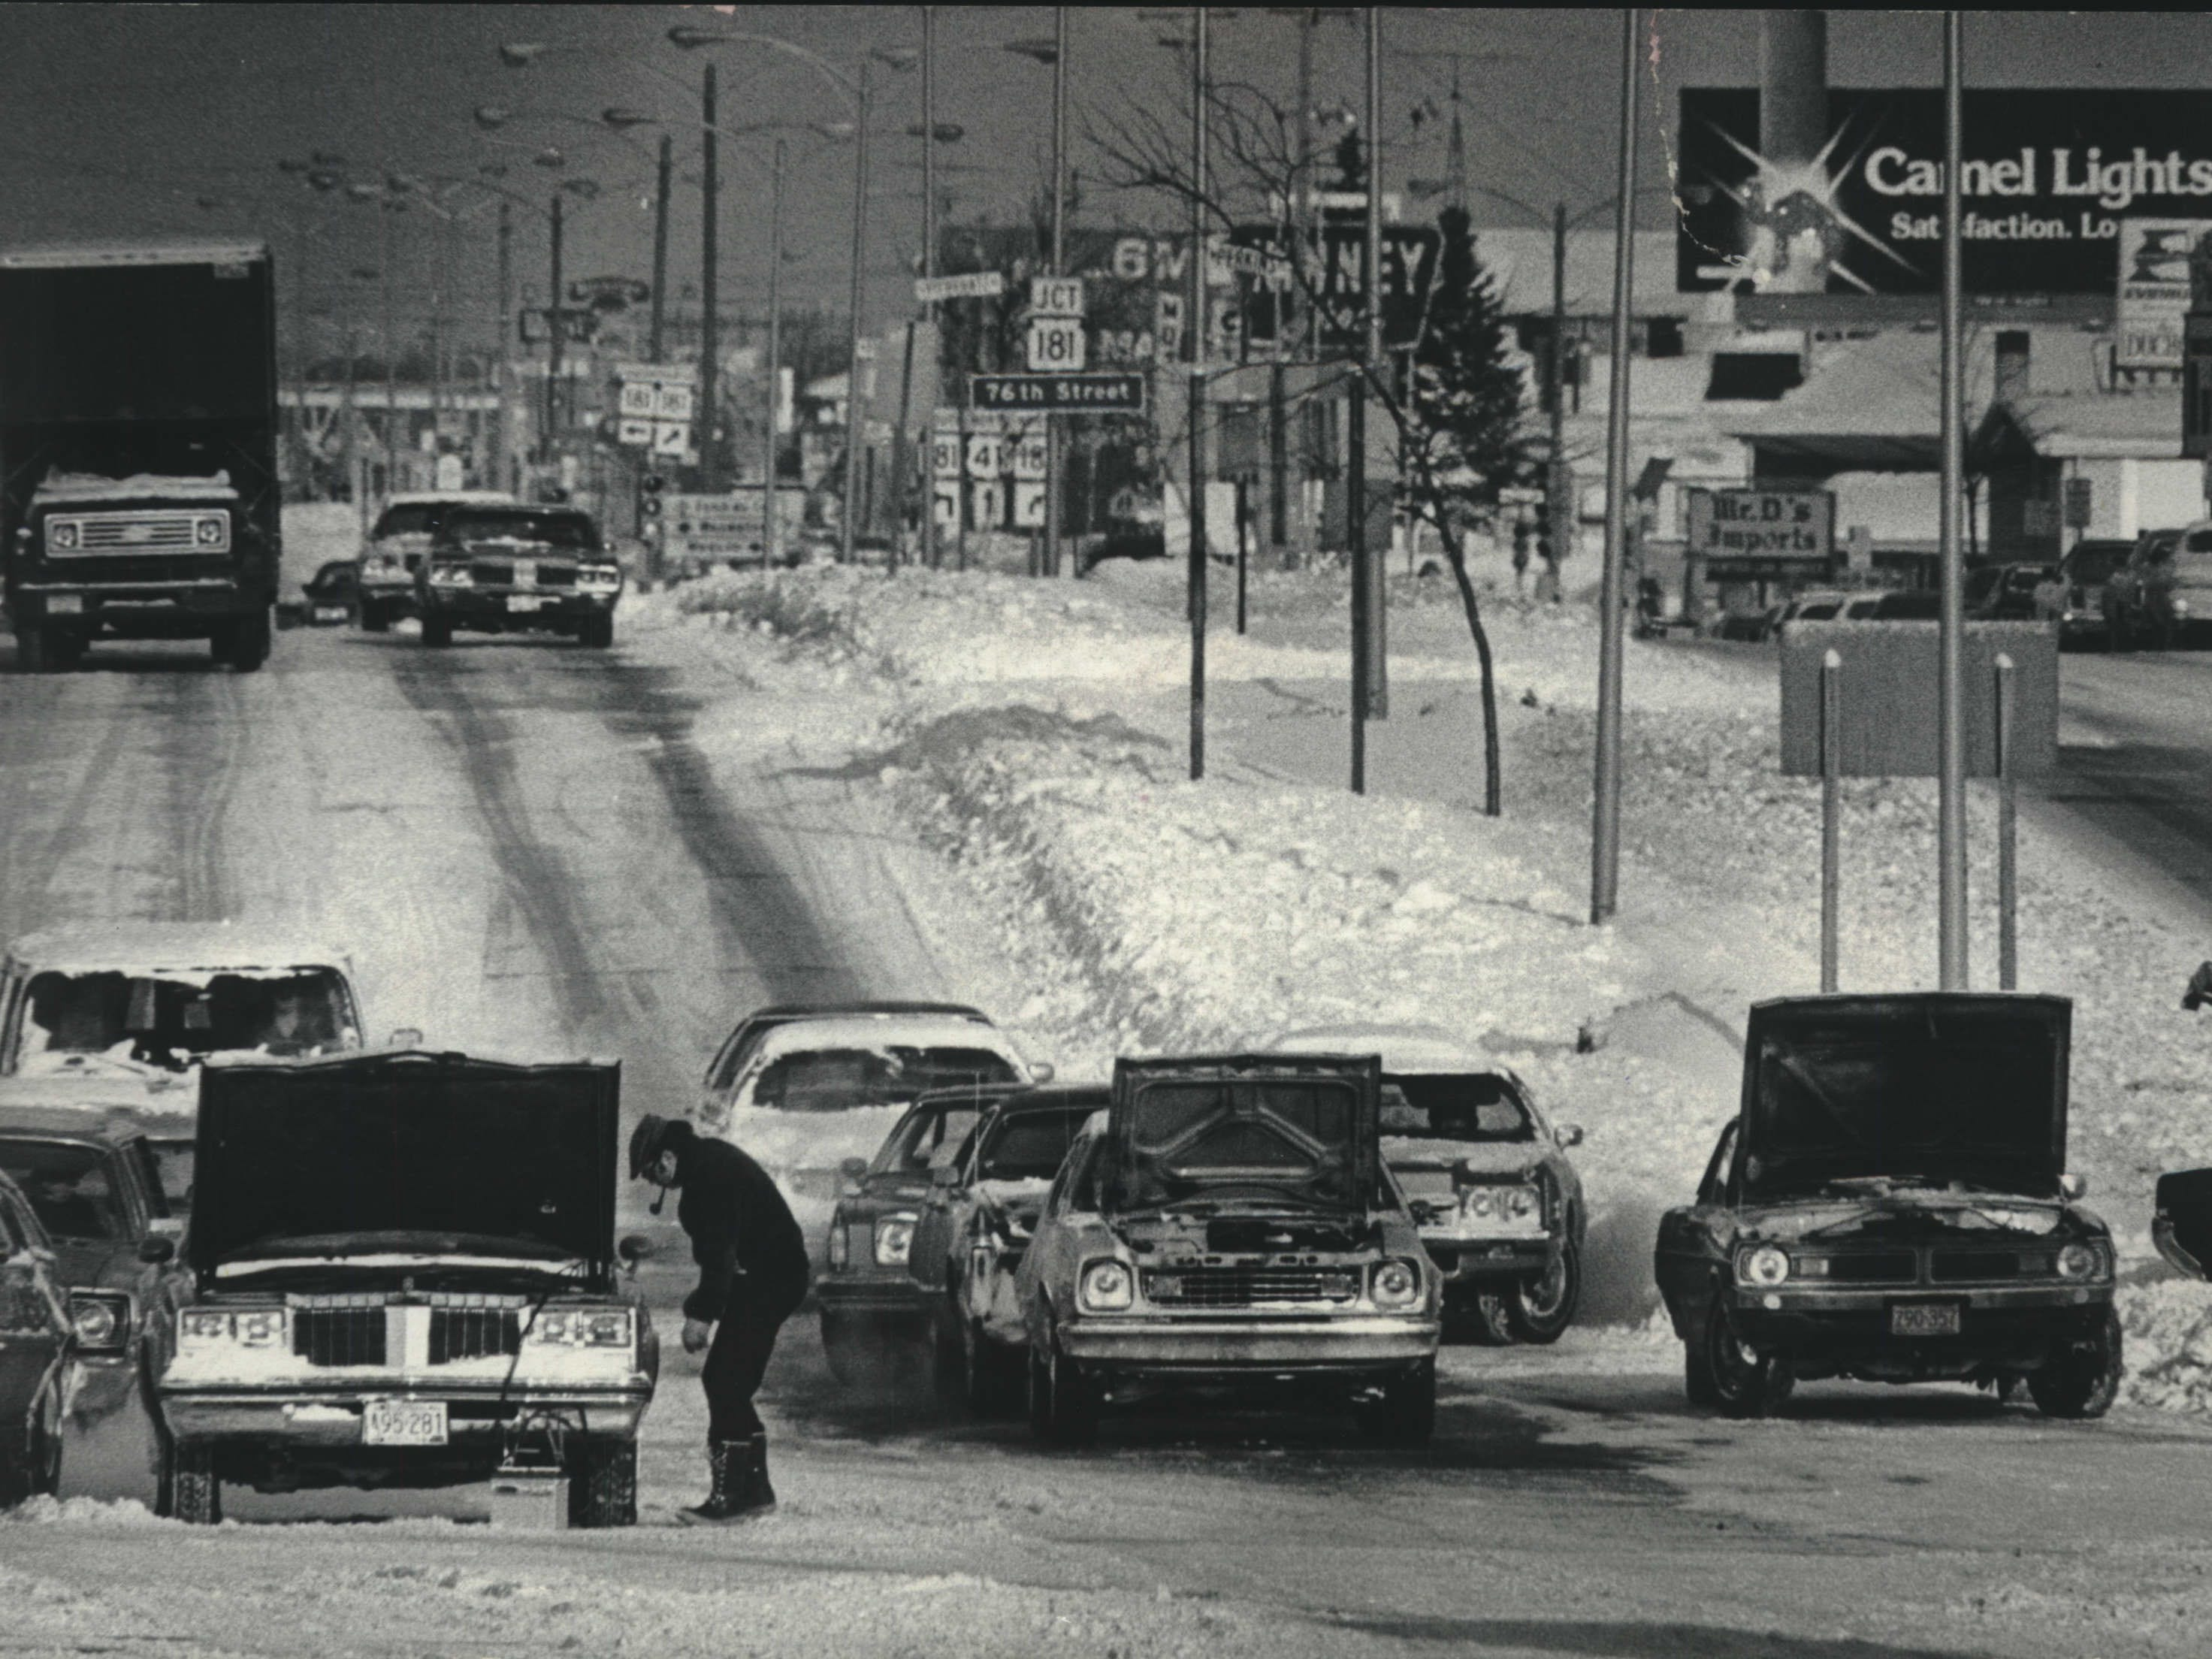 Cars beaten by two days of bitter cold seemingly commiserate on Appleton Avenue near 6th Street on Jan. 2, 1979. Subzero temperatures hit Milwaukee after a New Year's Eve/Day snowstorm that dumped more than 14 inches of snow on the area and closed down Mitchell International Airport. This photo was published in the Jan. 2, 1979, Milwaukee Journal.